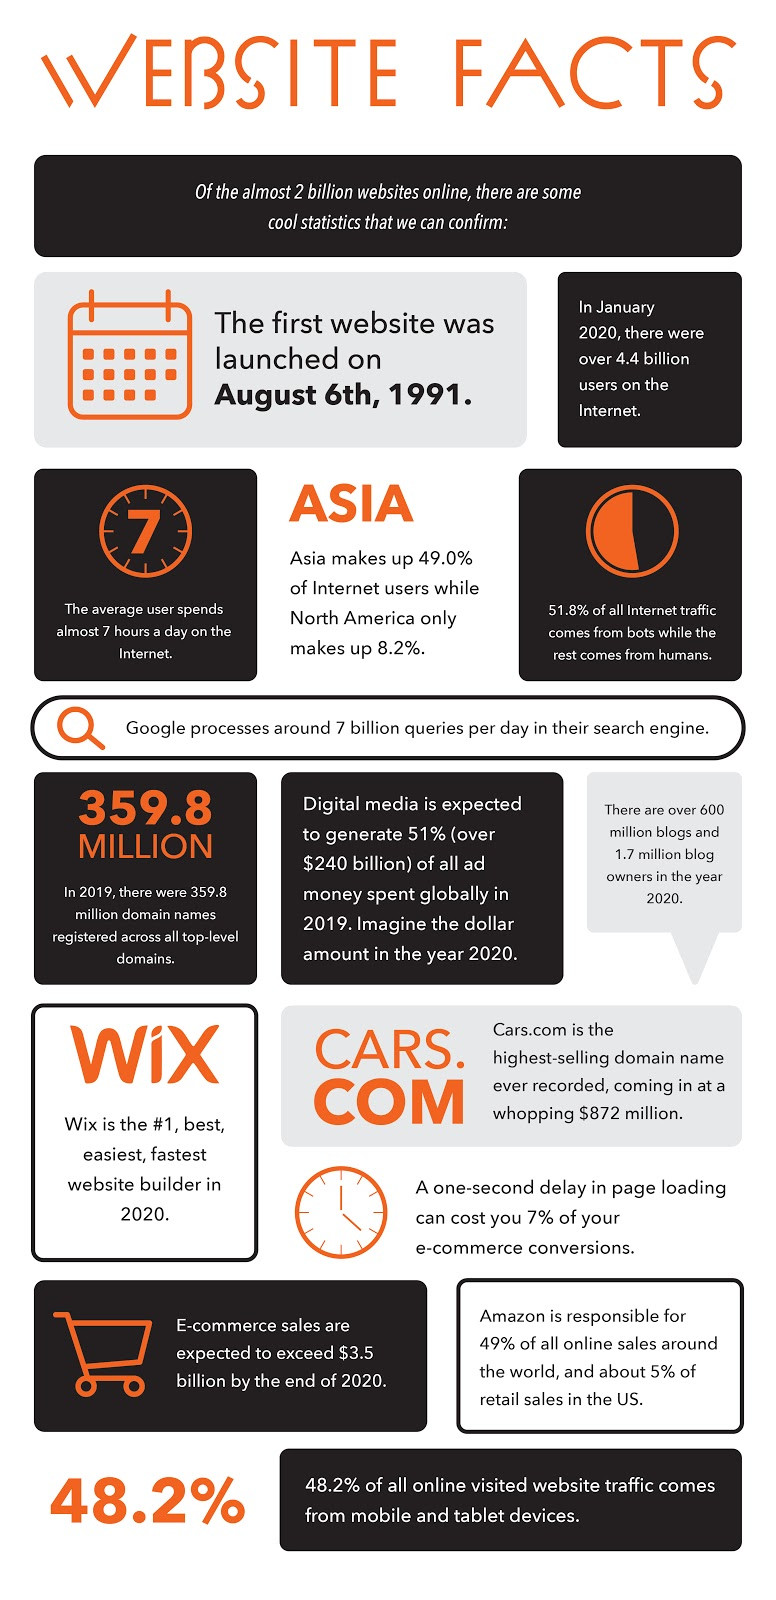 Website Facts | Interesting Statistics about Websites